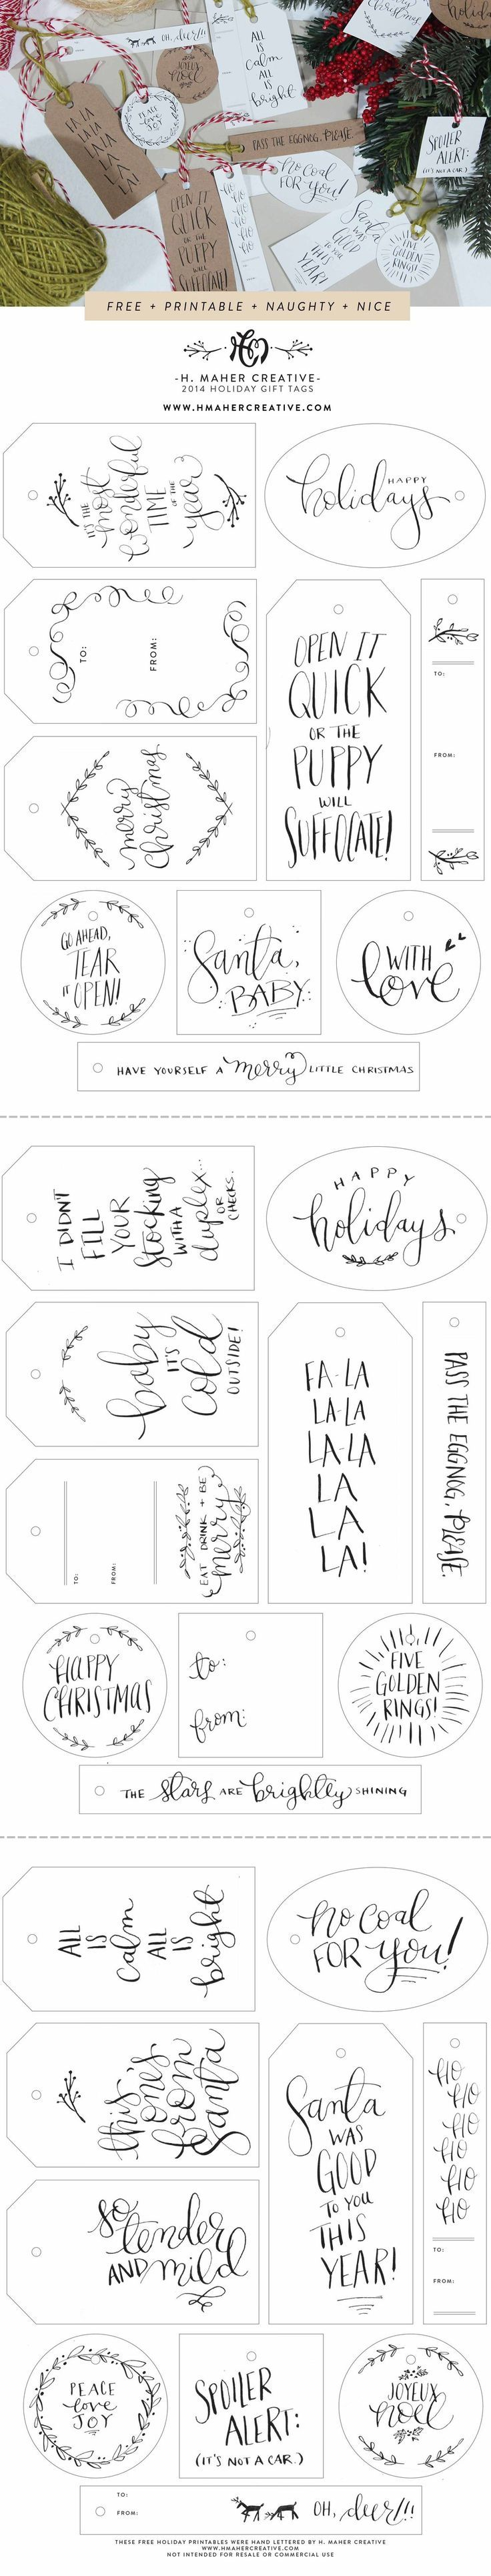 Naughty + Nice // 30 Free Hand-Lettered Holiday Gift Tag Printables from H. Maher Creative (http://www.hmahercreative.com) hand lettering // calligraphy // diy // holiday // christmas // gift wrap // hanging tags // funny // cute // illustrated